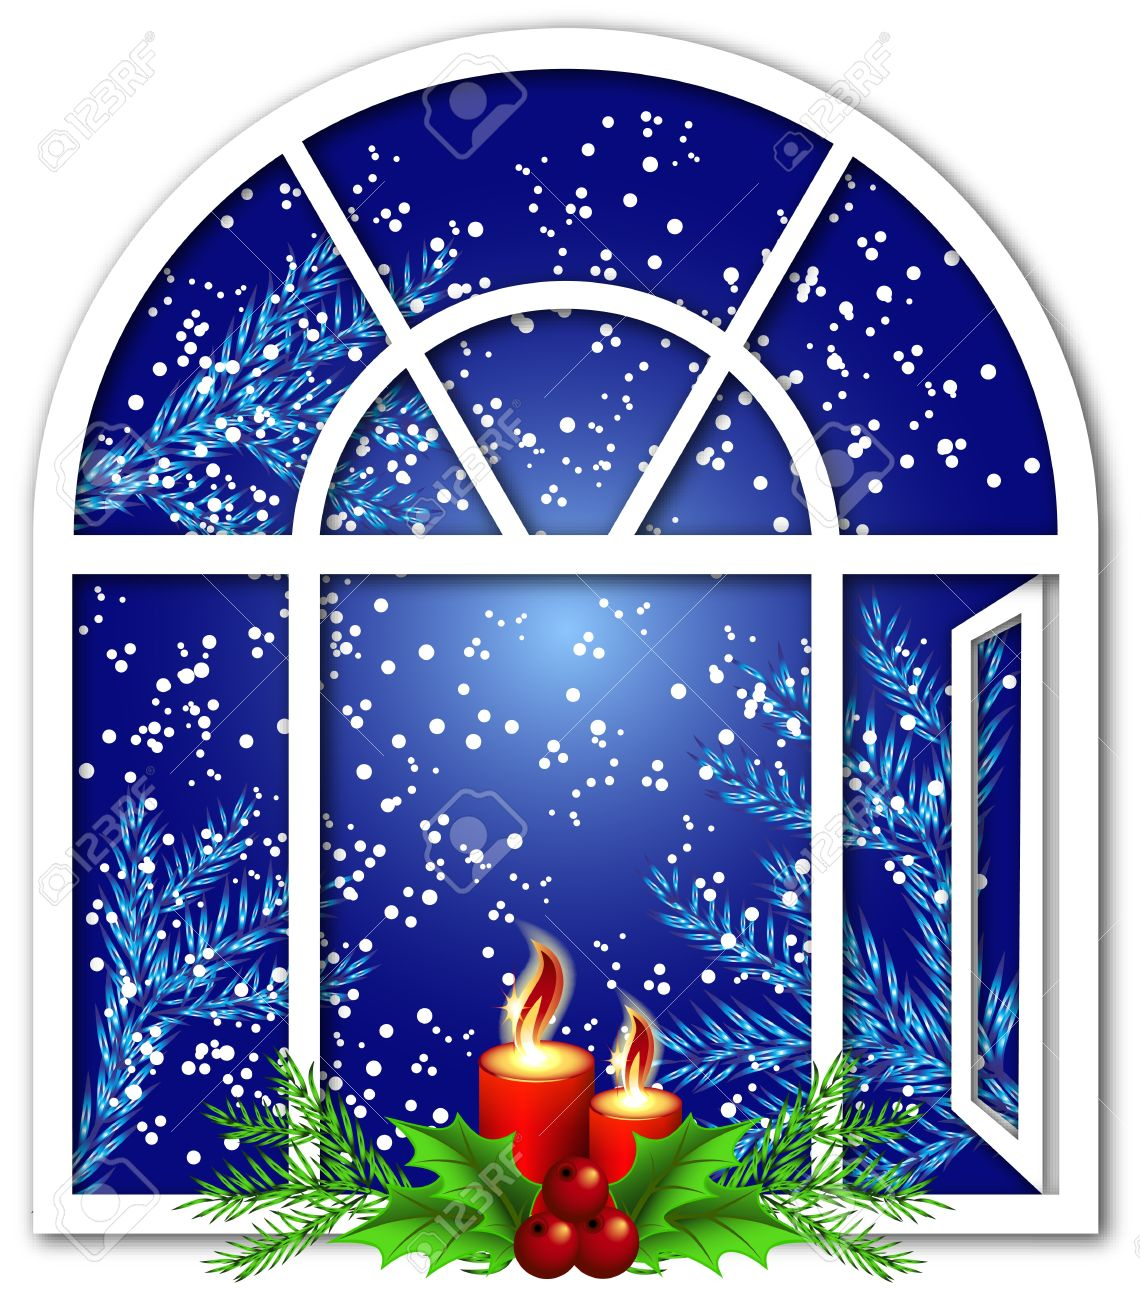 Christmas window with candles and snow.